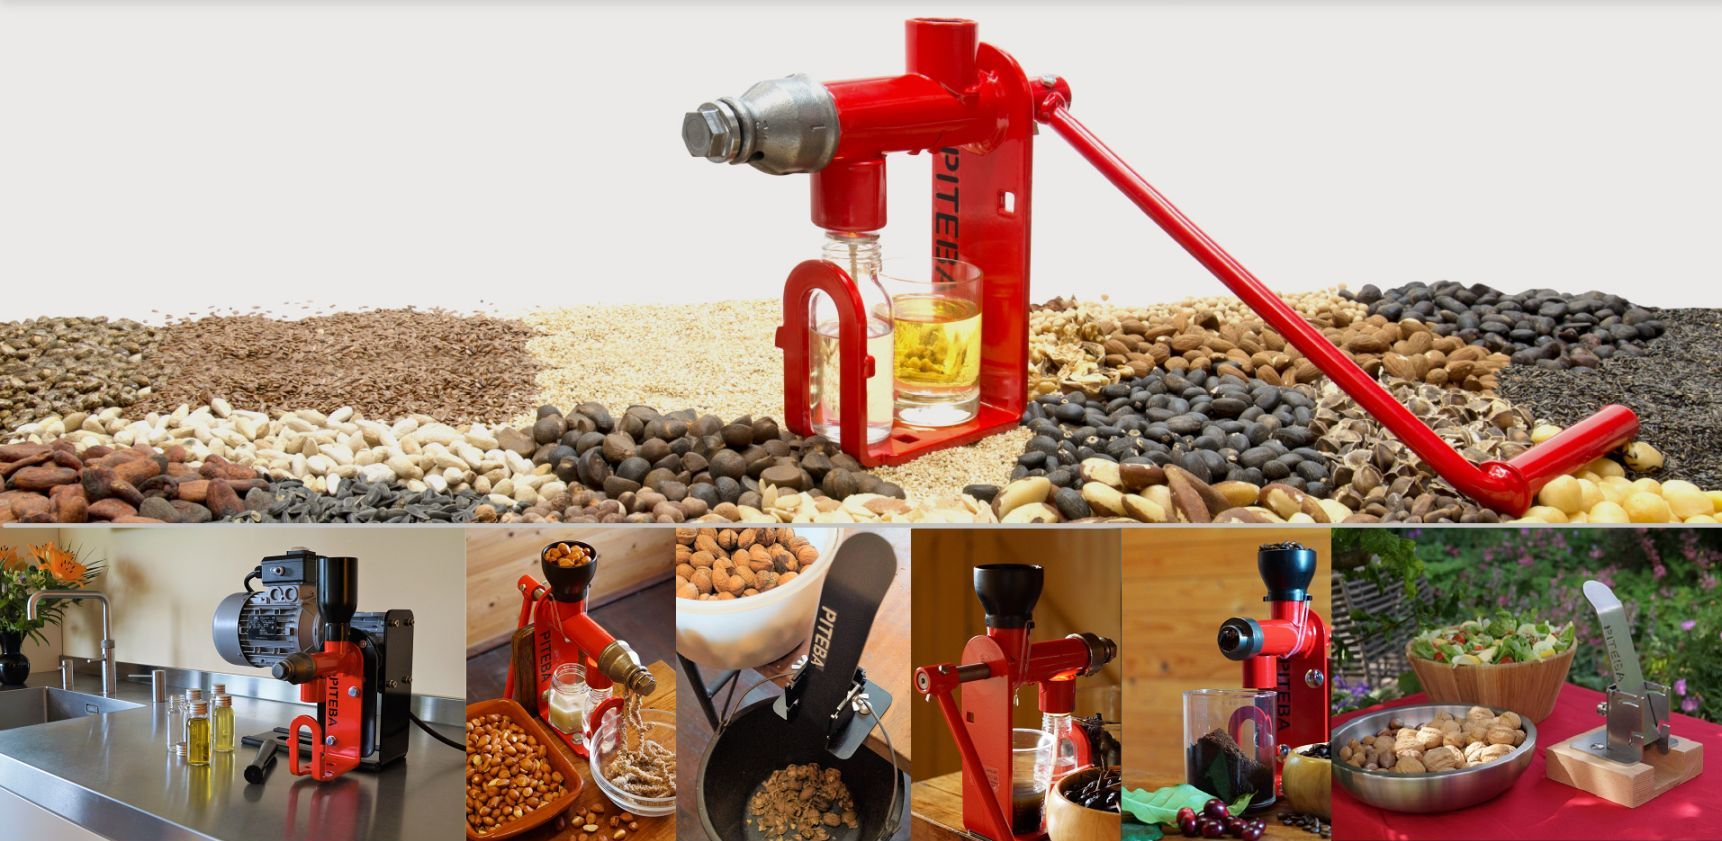 Oil press for homemade oil, manual and electric. Nutcracker for large quantities